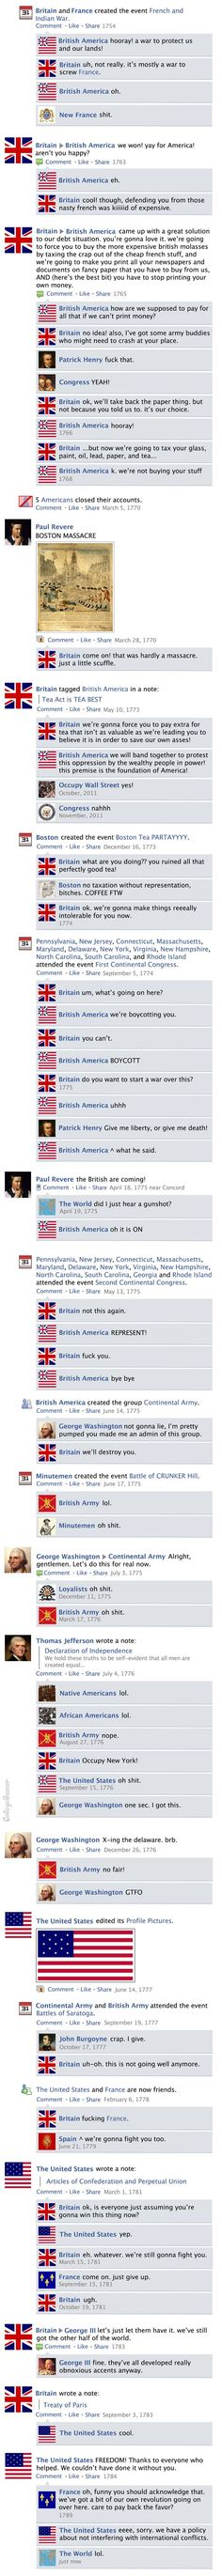 The American Revolution - Honestly you can't not have laughed at that very last comment. I did and I'm an American.